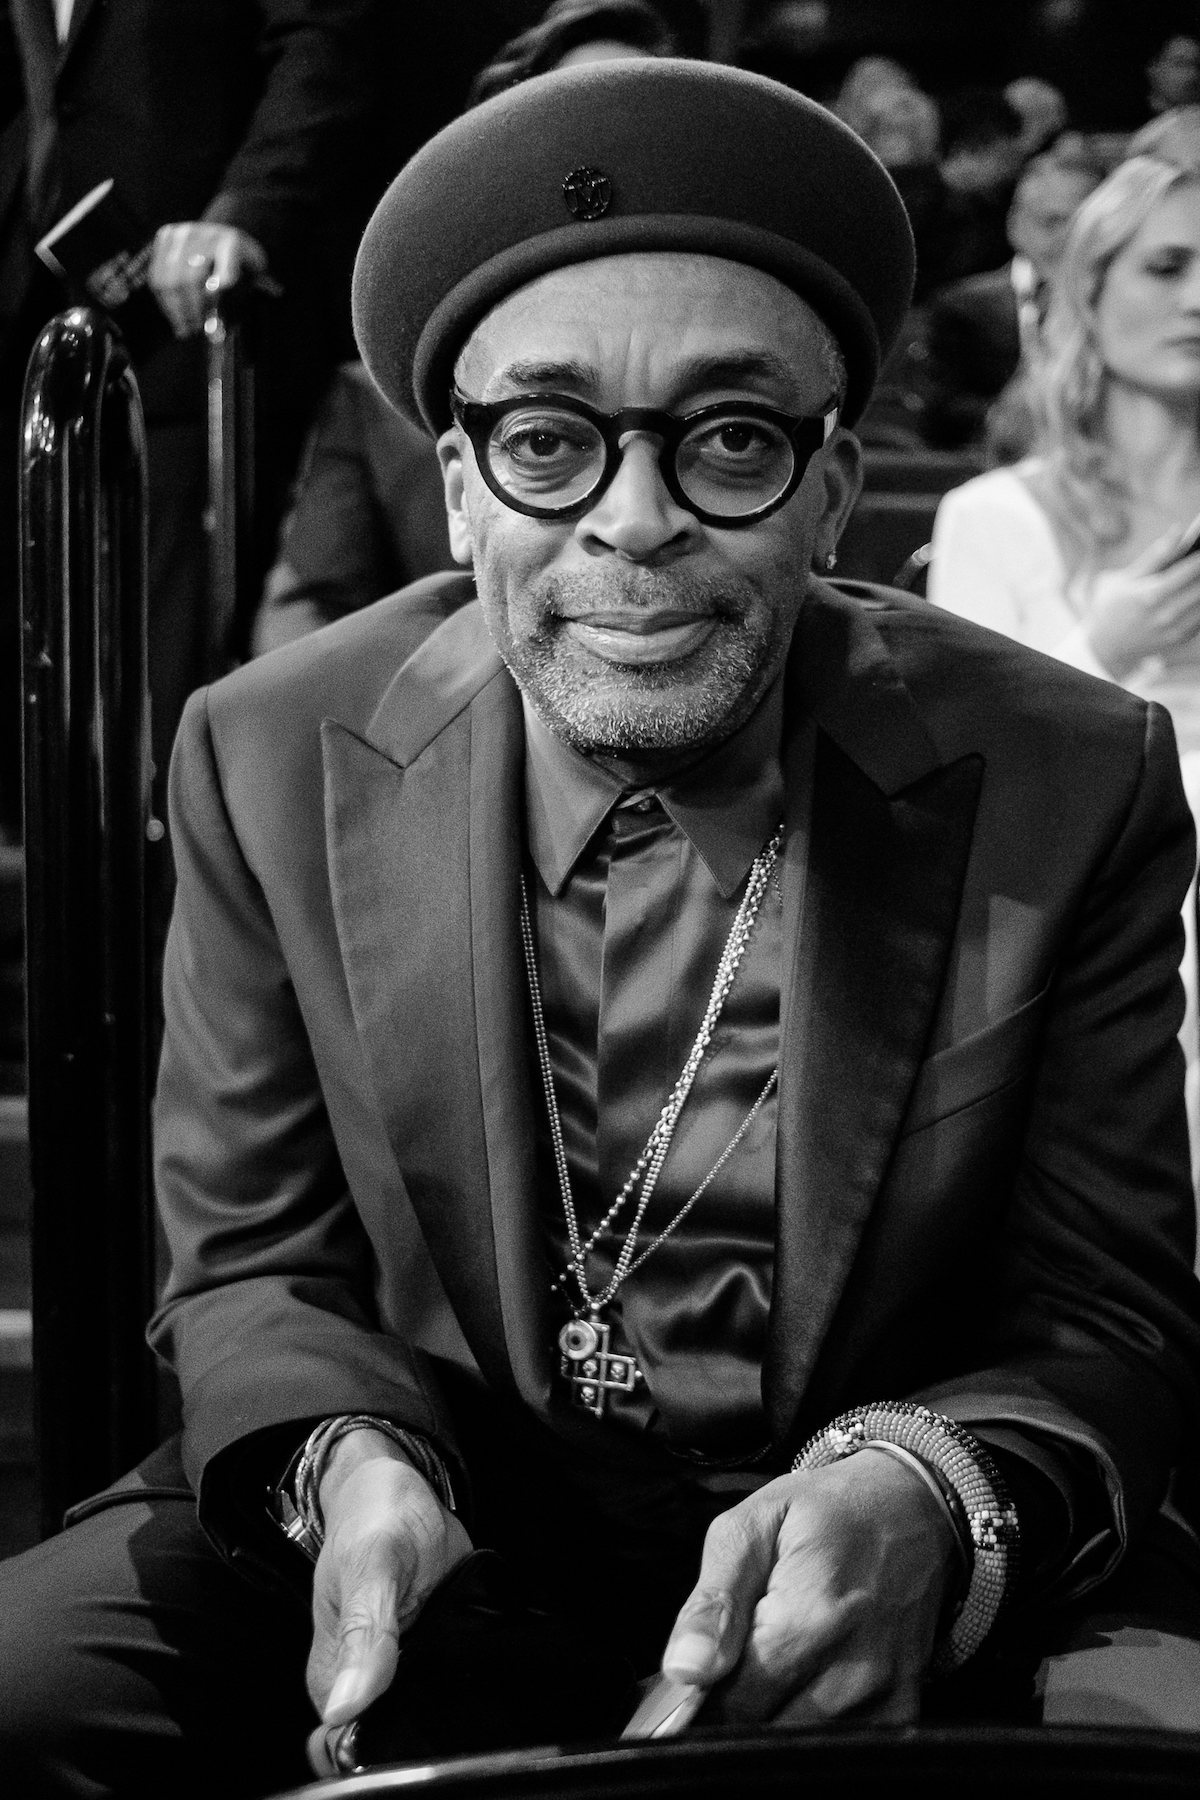 Photo of Spike Lee by Charlie Clift